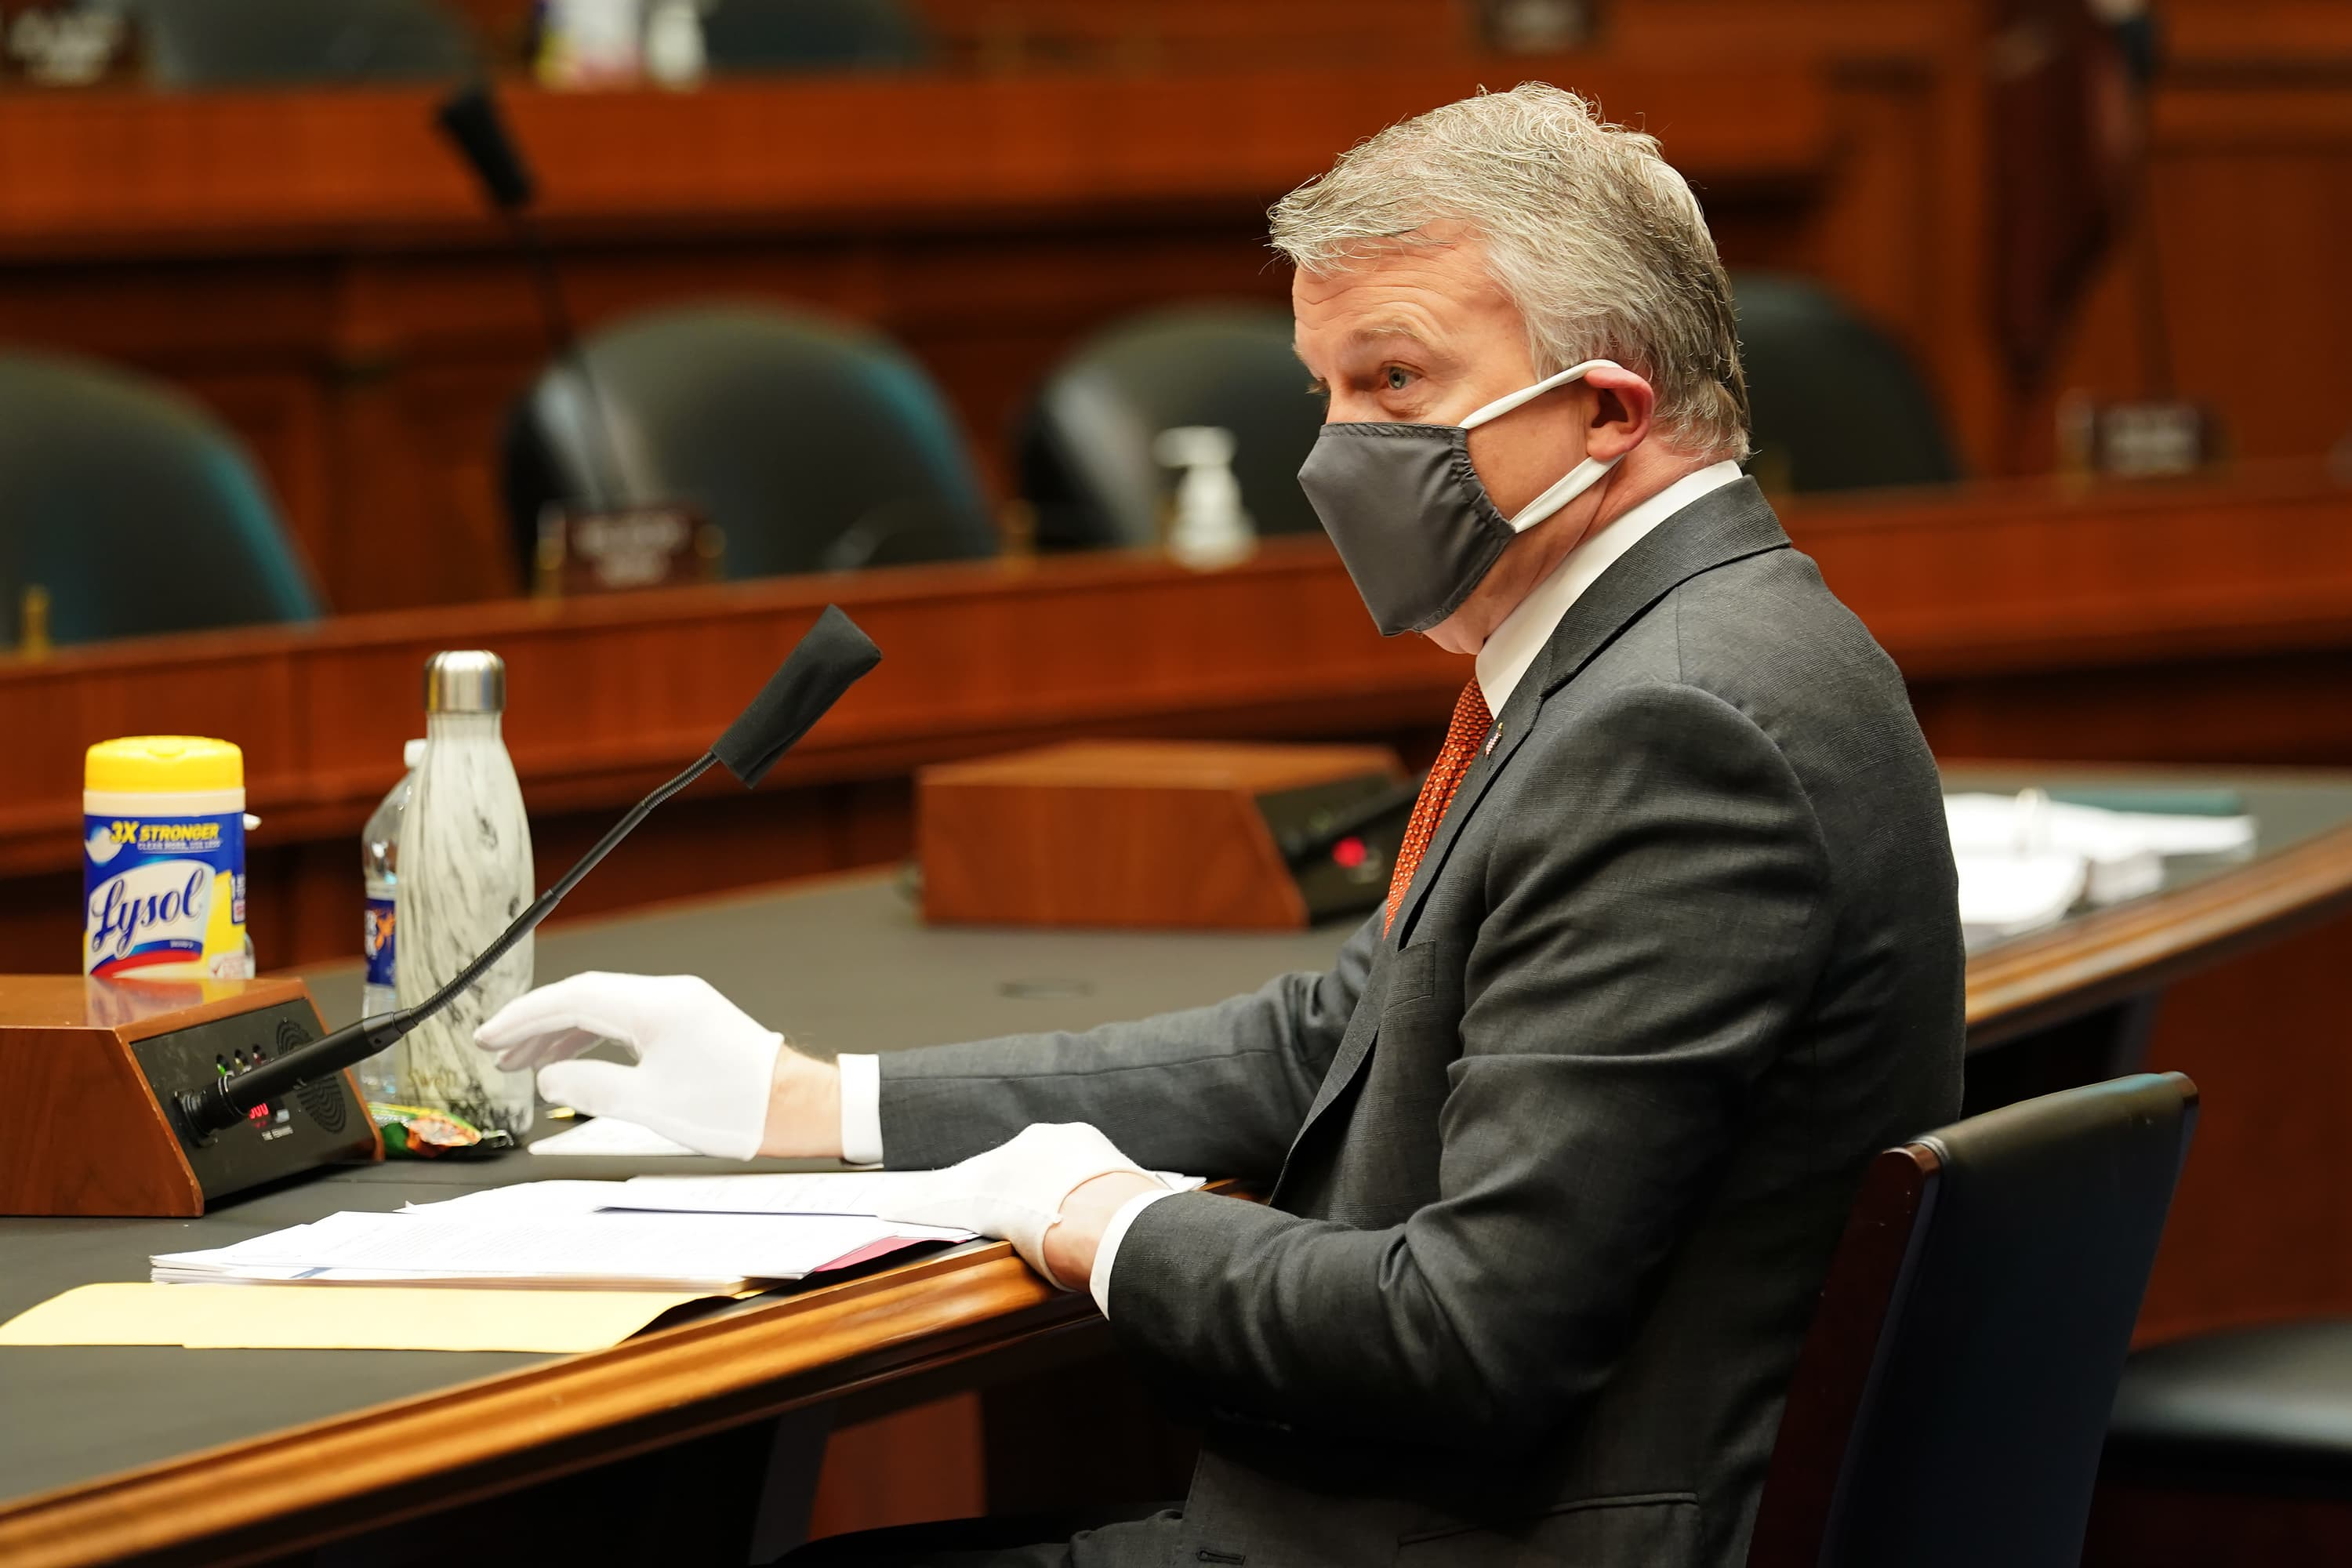 'Lives were lost' as US officials refused to ramp up production of N95 masks